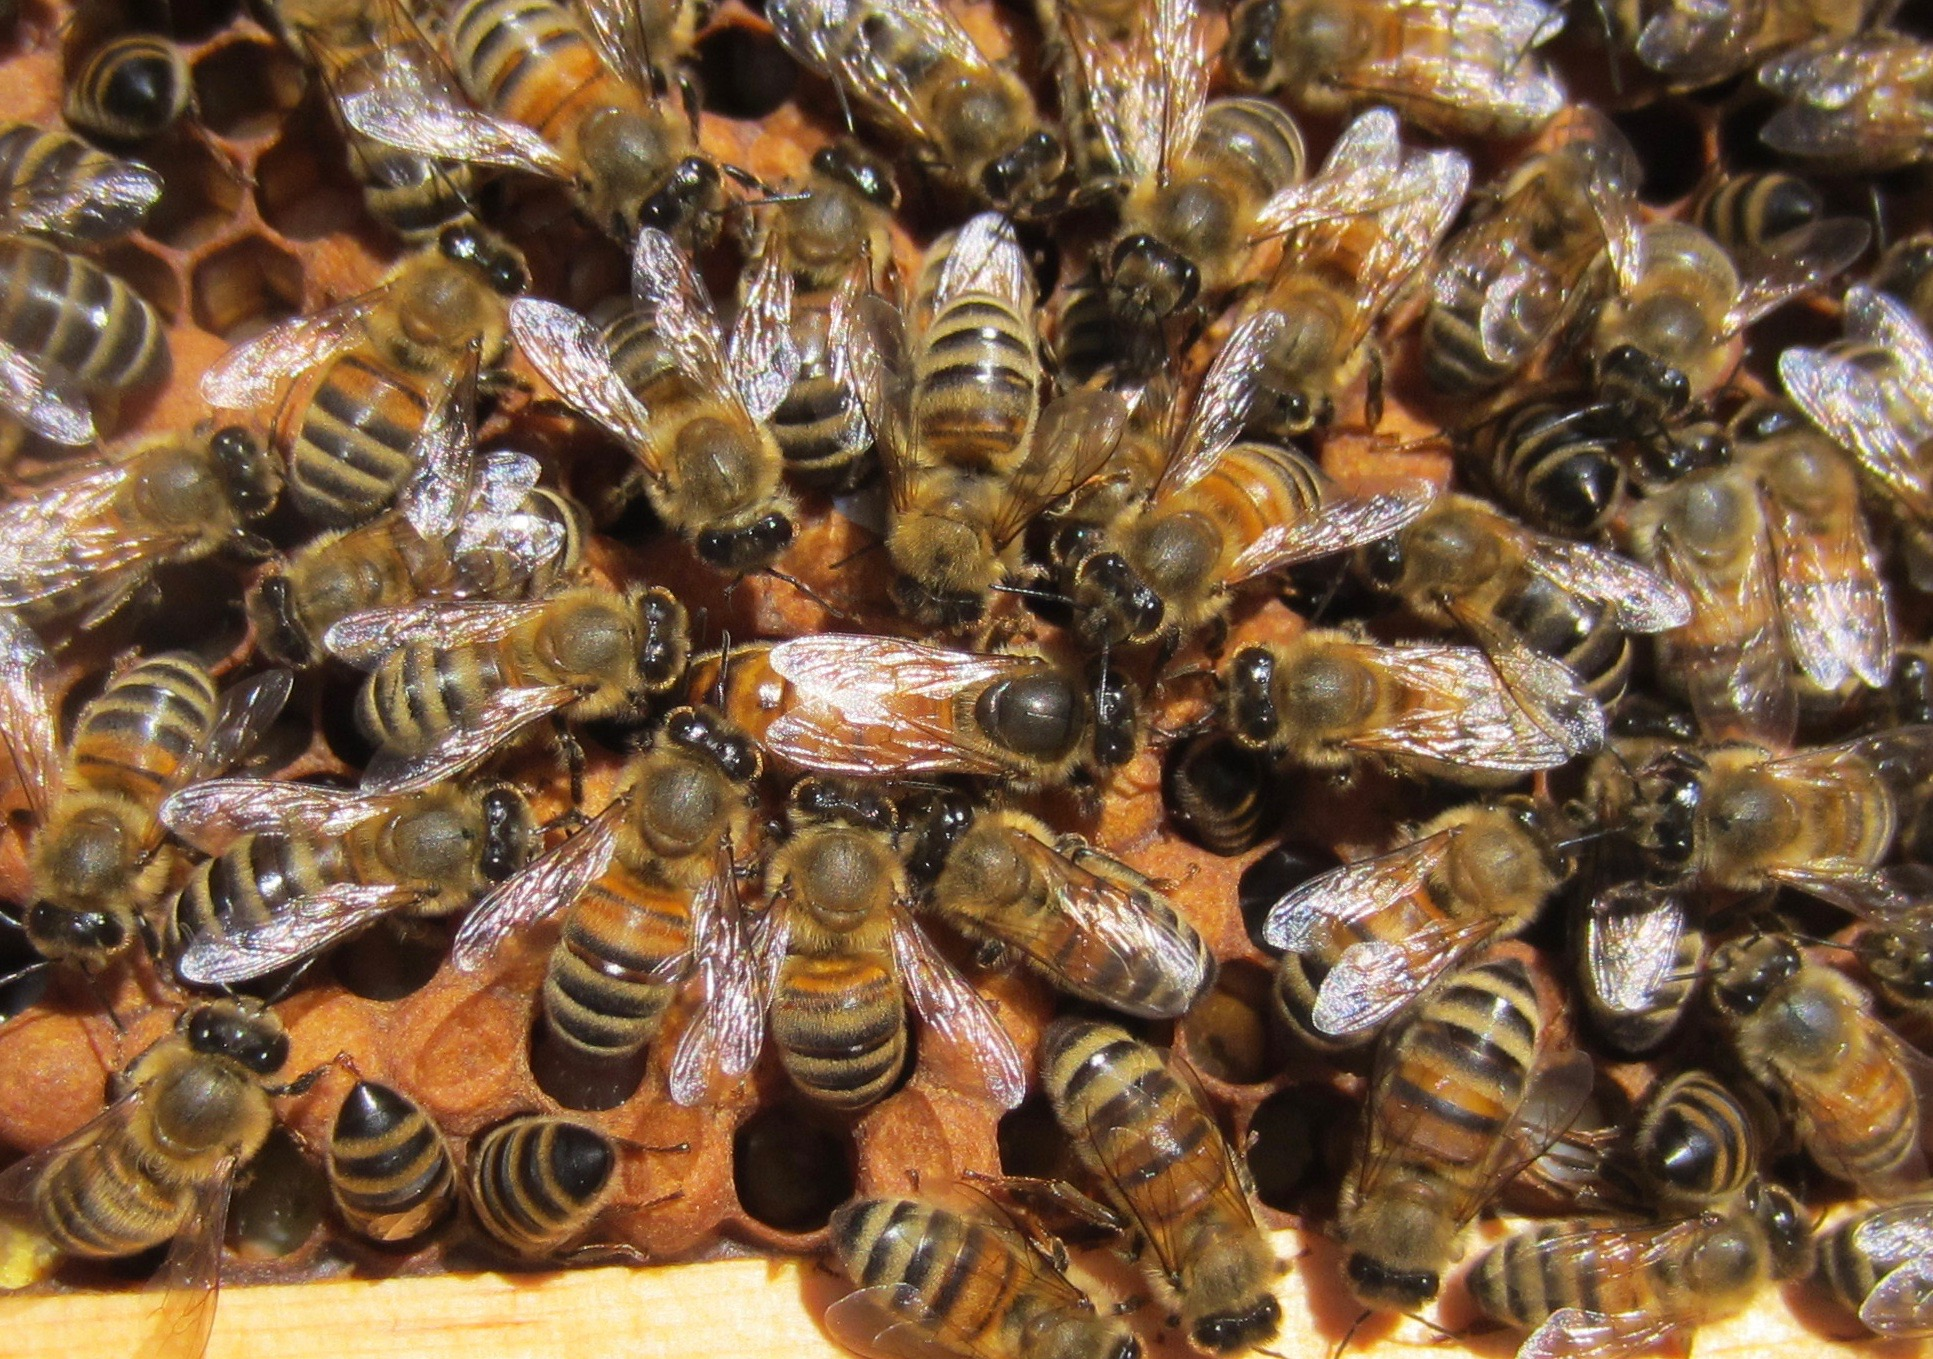 Bees are well organized